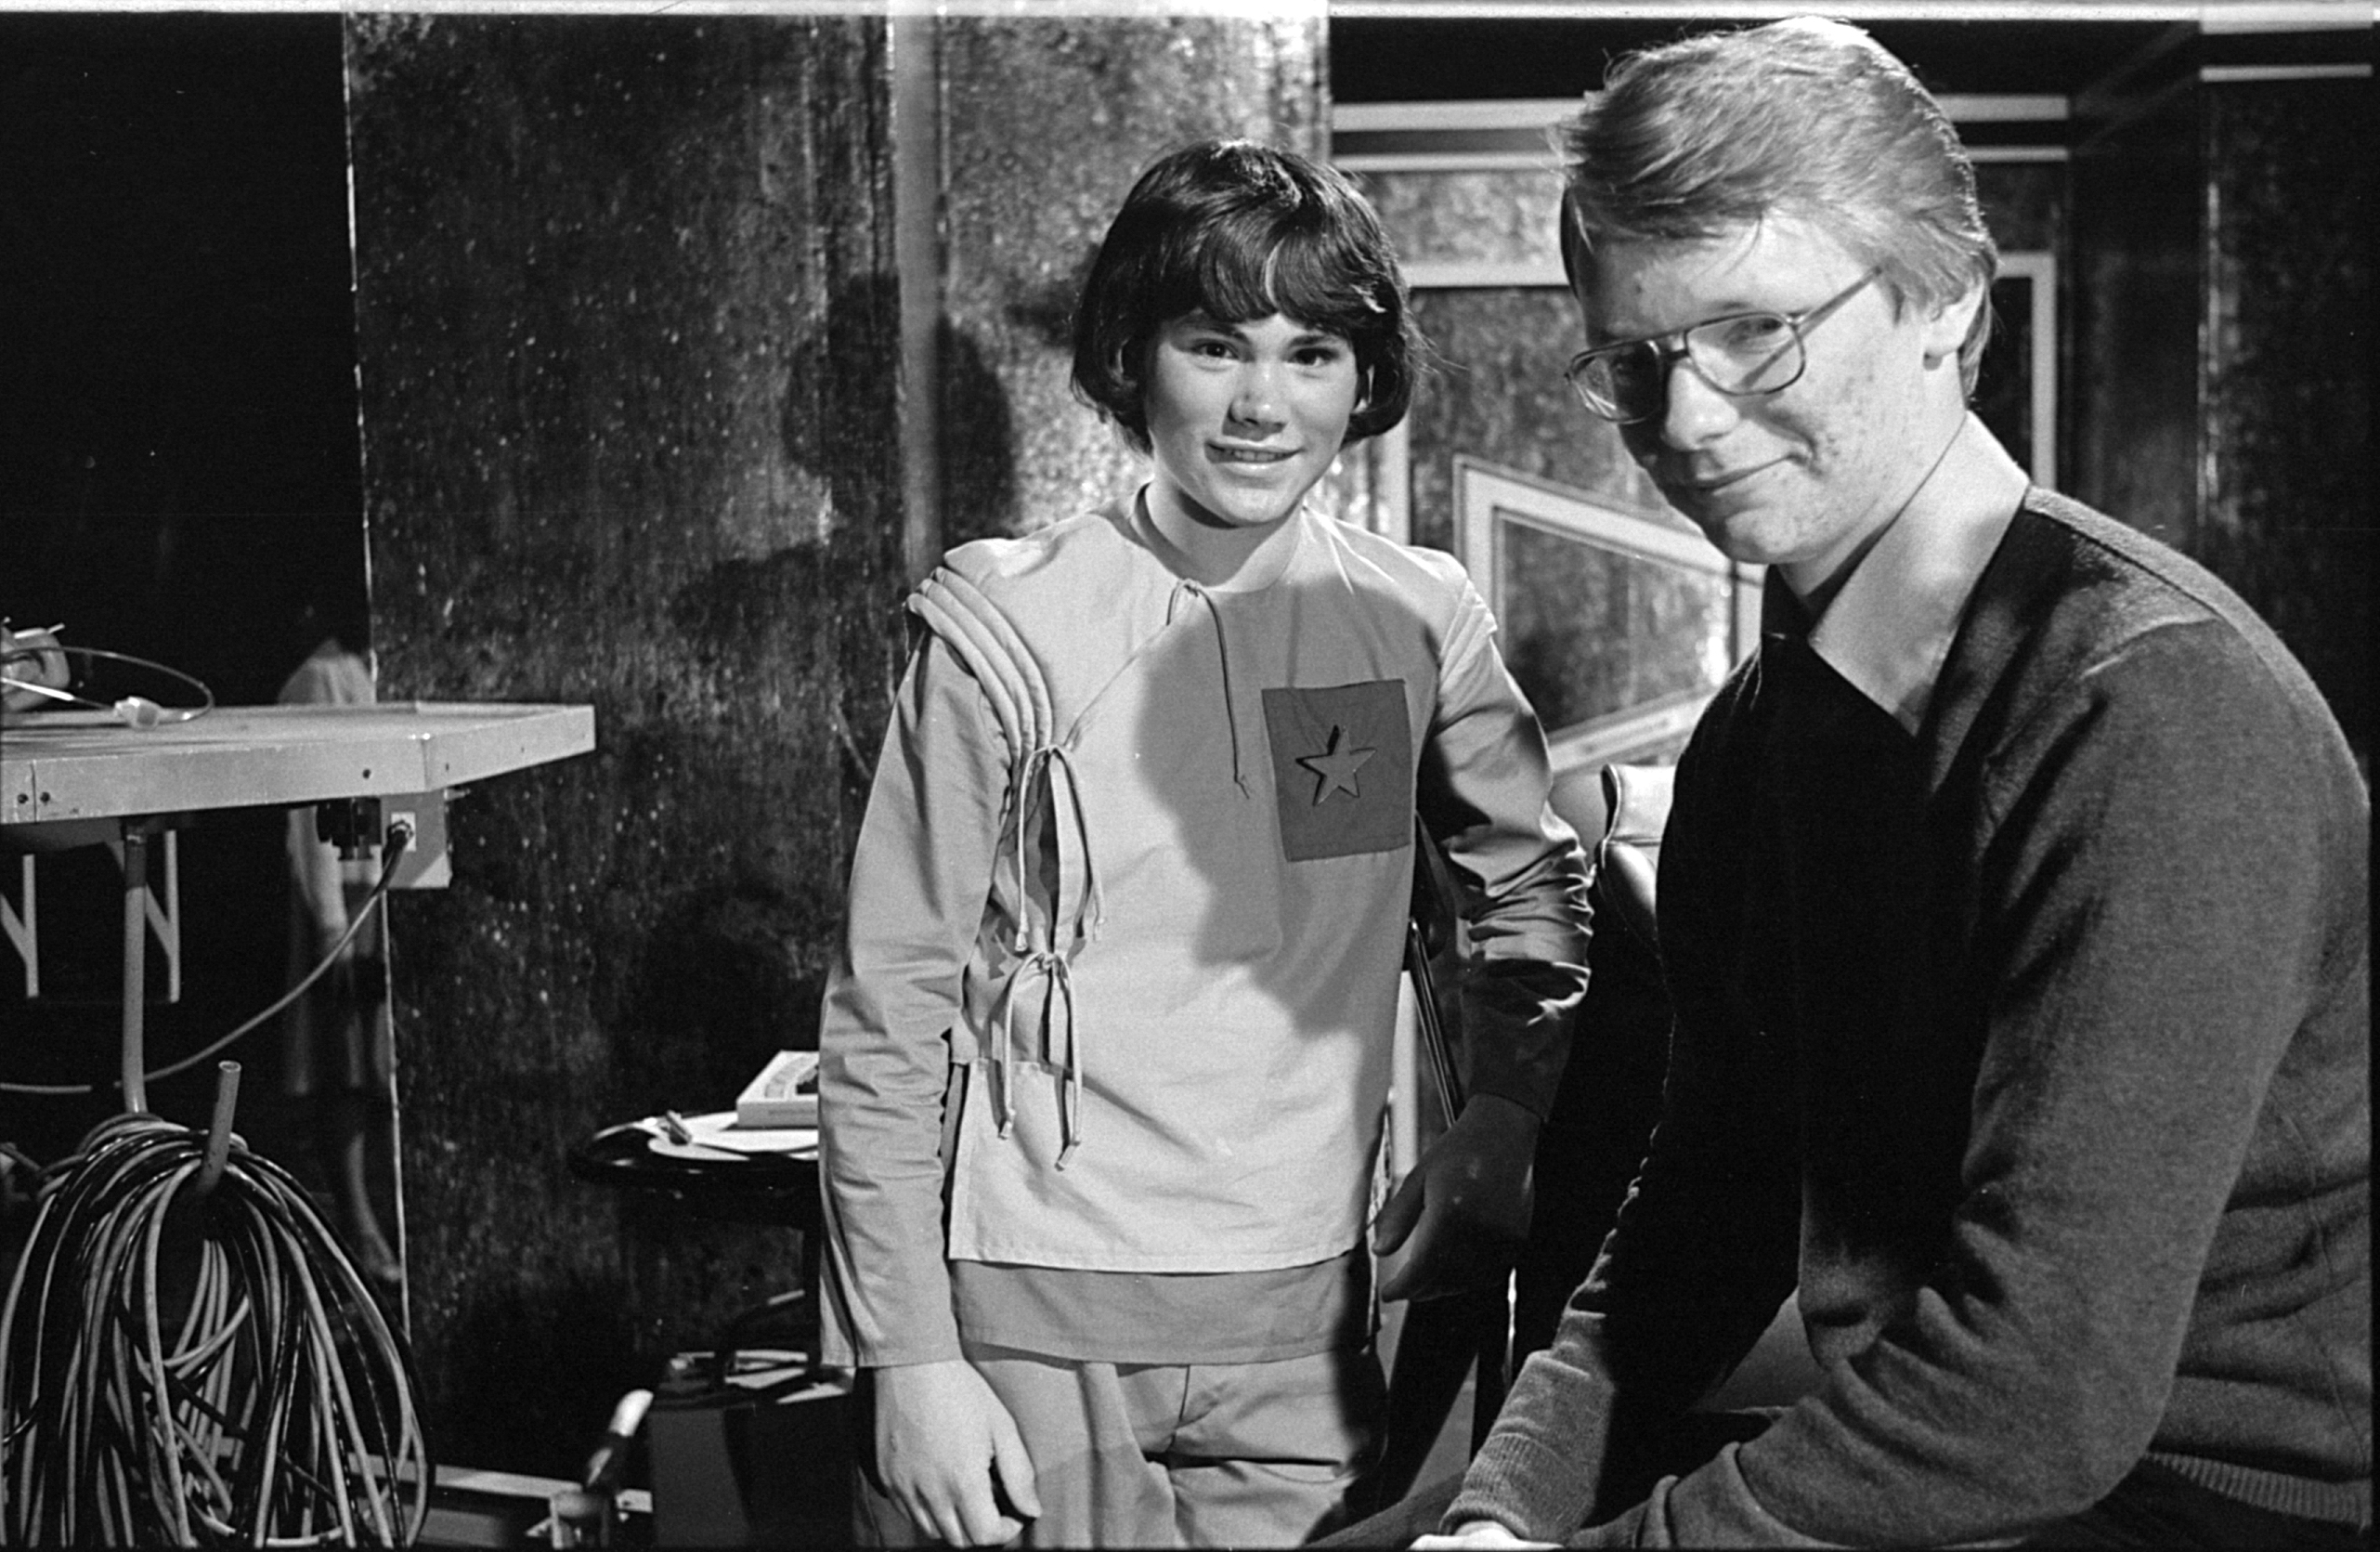 Matthew Waterhouse and Andrew Smith 1980 B